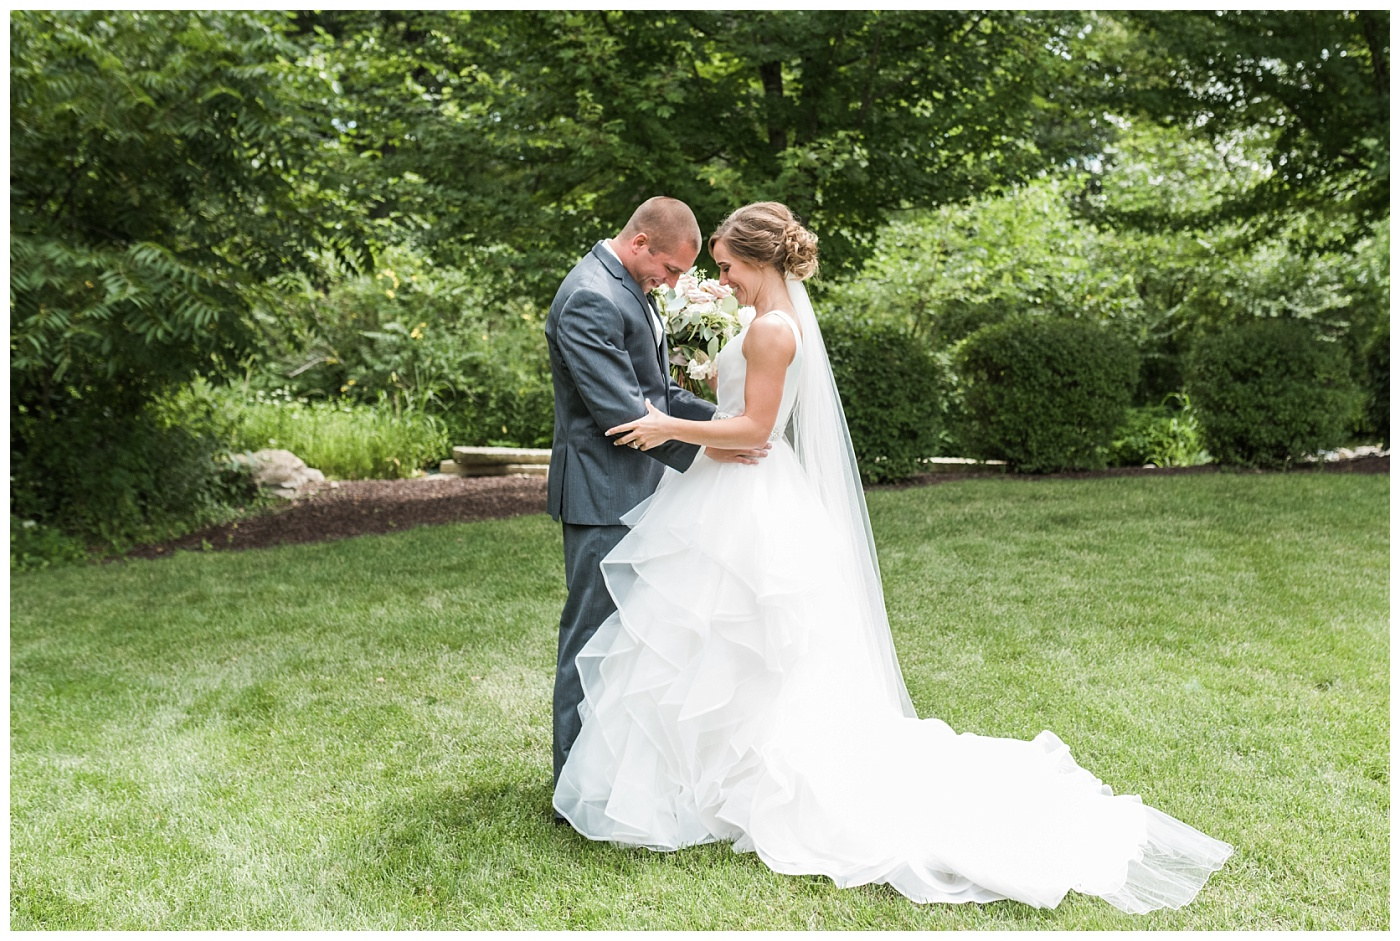 Stephanie Marie Photography Newman Catholic Center Ceremony Bella Sala Reception Tiffin Iowa City Wedding Photographer Chelsey Justin Meyers_0014-1.jpg